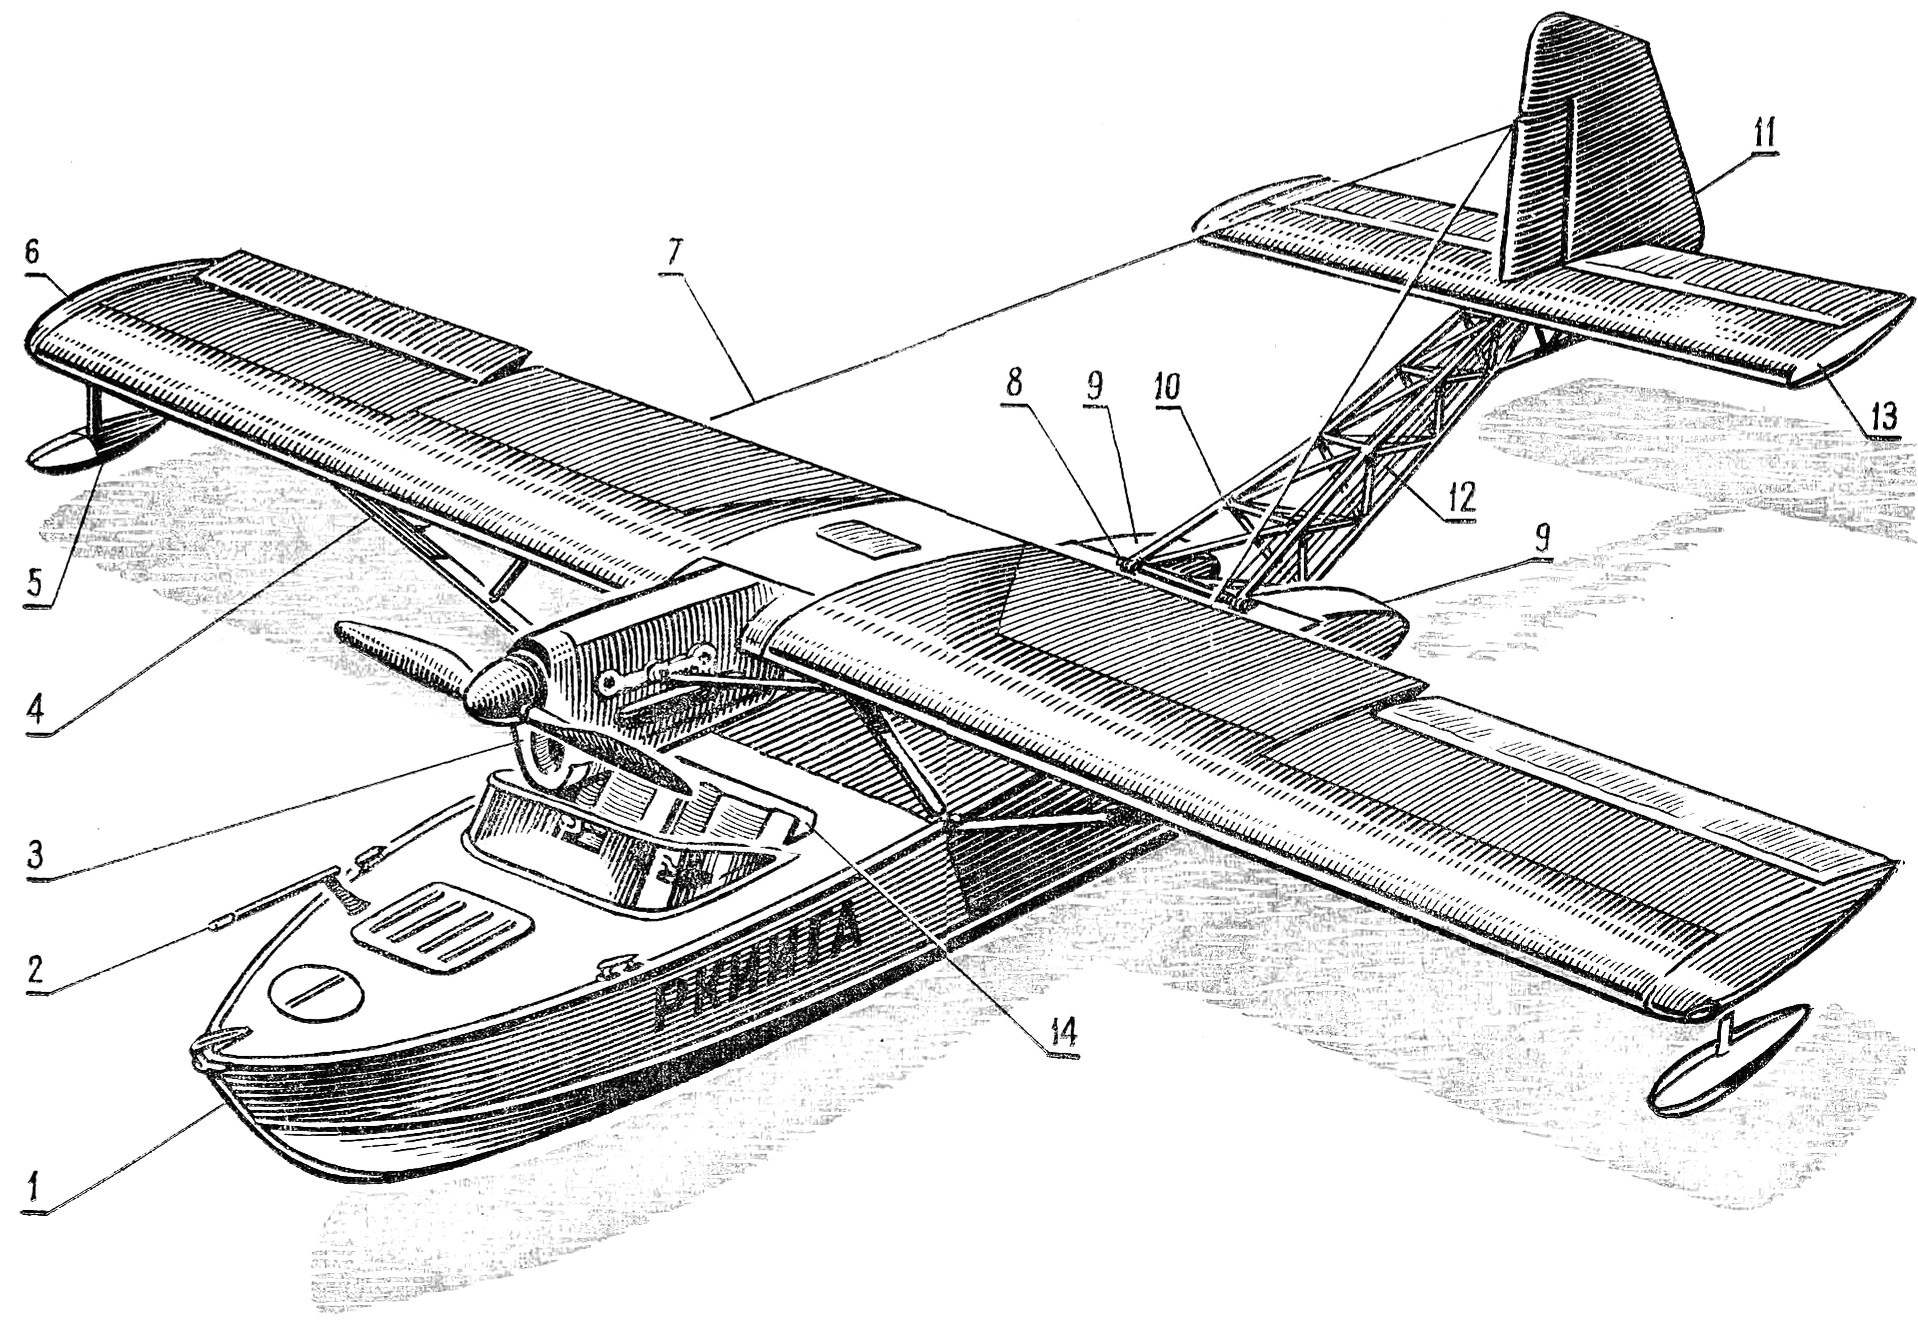 Fig. 1. The overall layout of the seaplane rkiiga-74